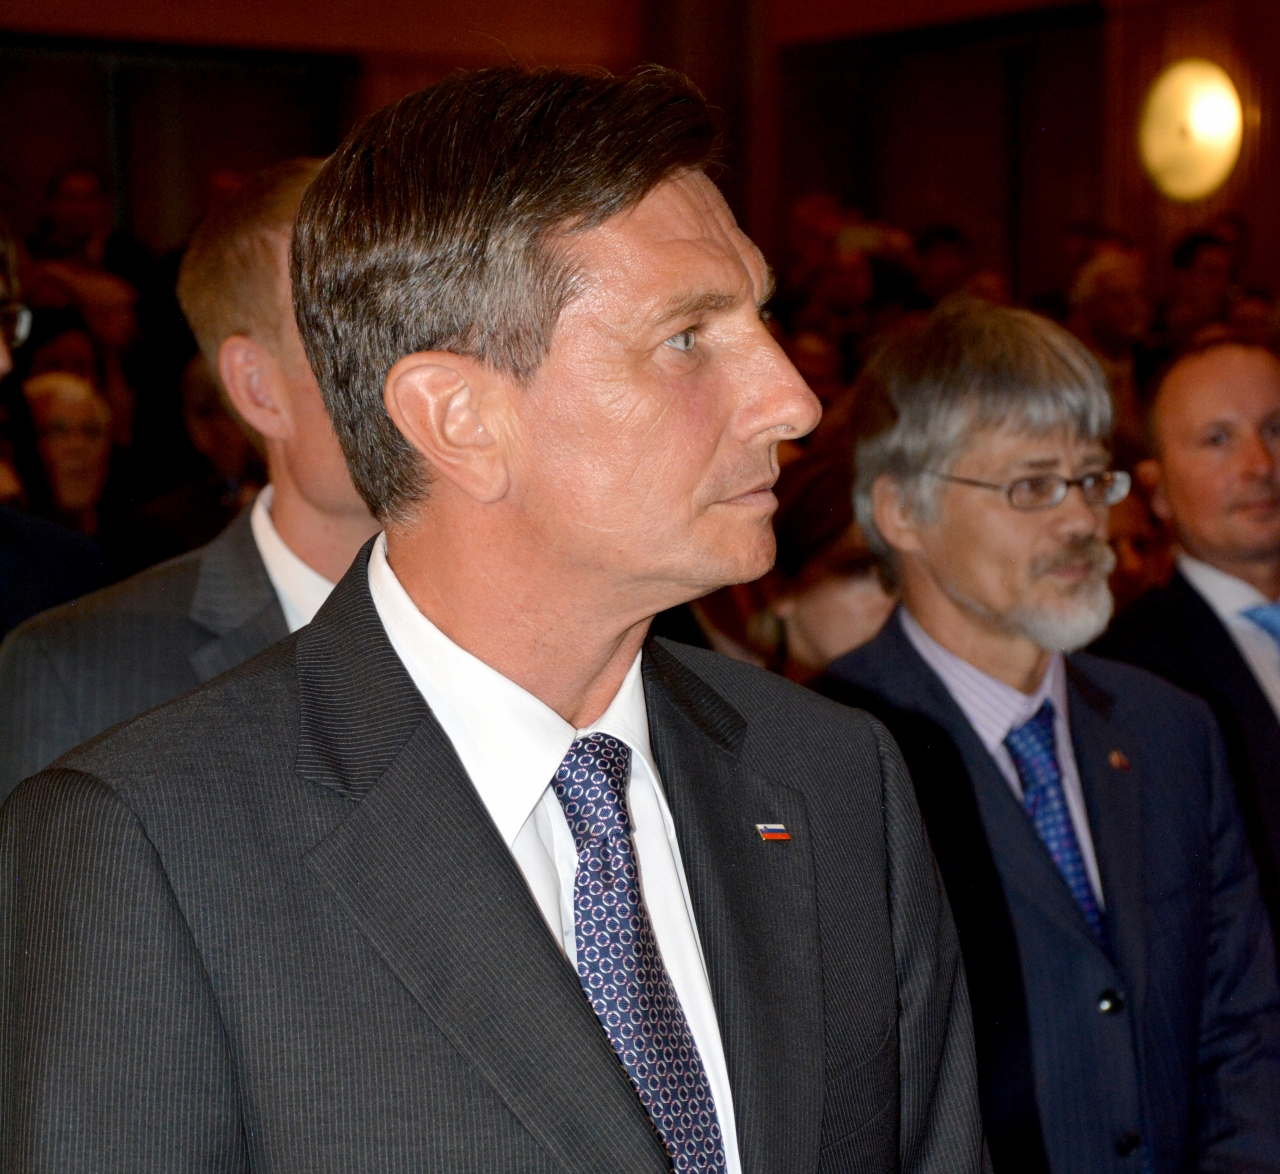 President of the Republic of Slovenia Borut Pahor